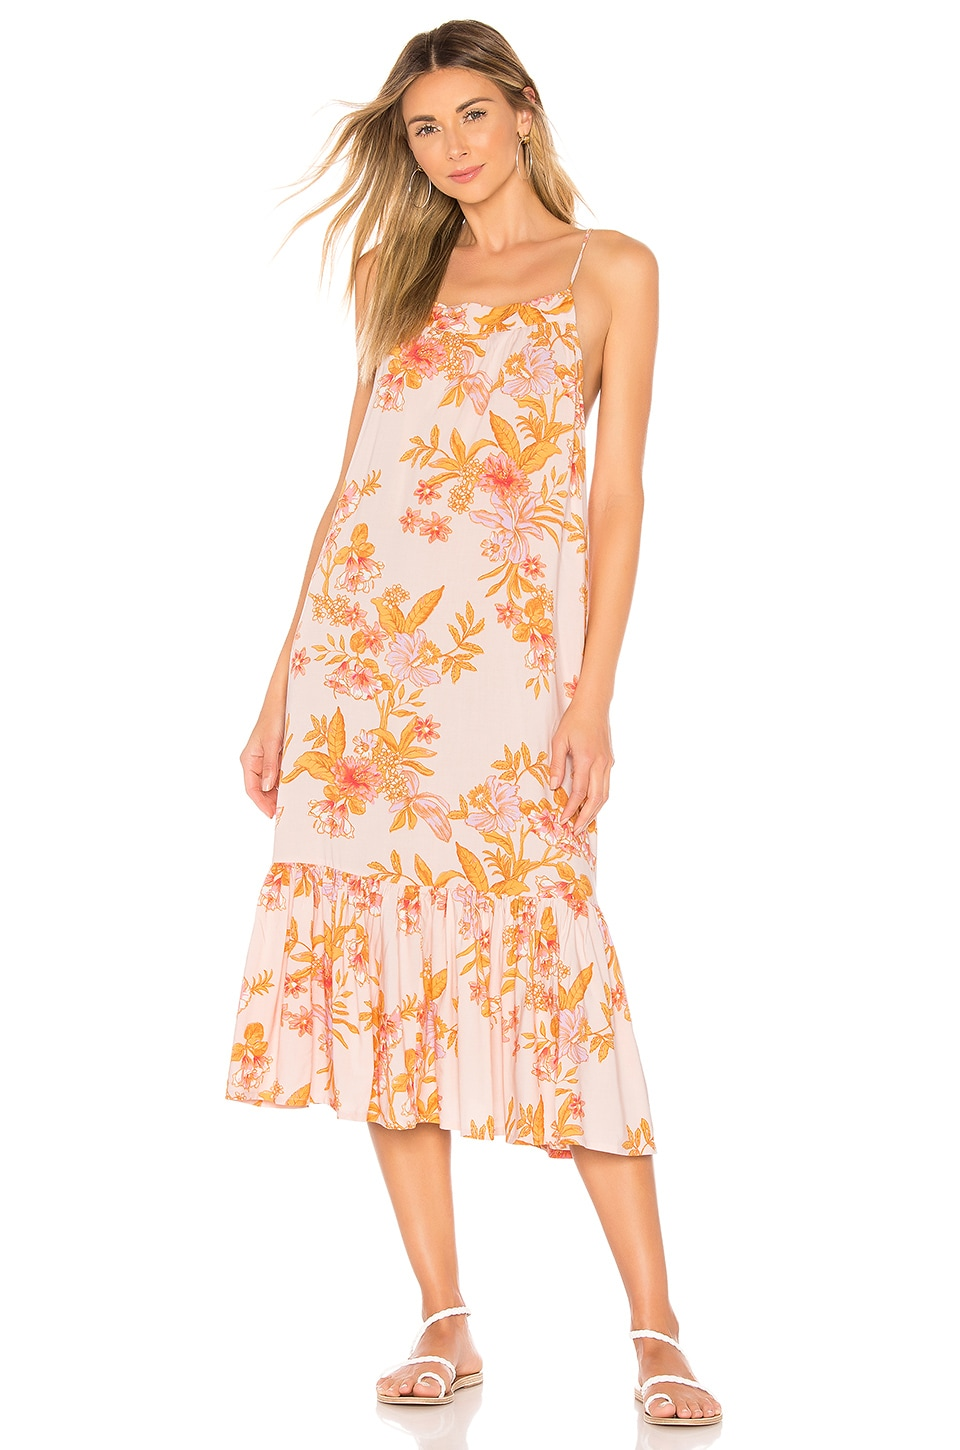 Tularosa Haels Dress in Pastel Garden Floral